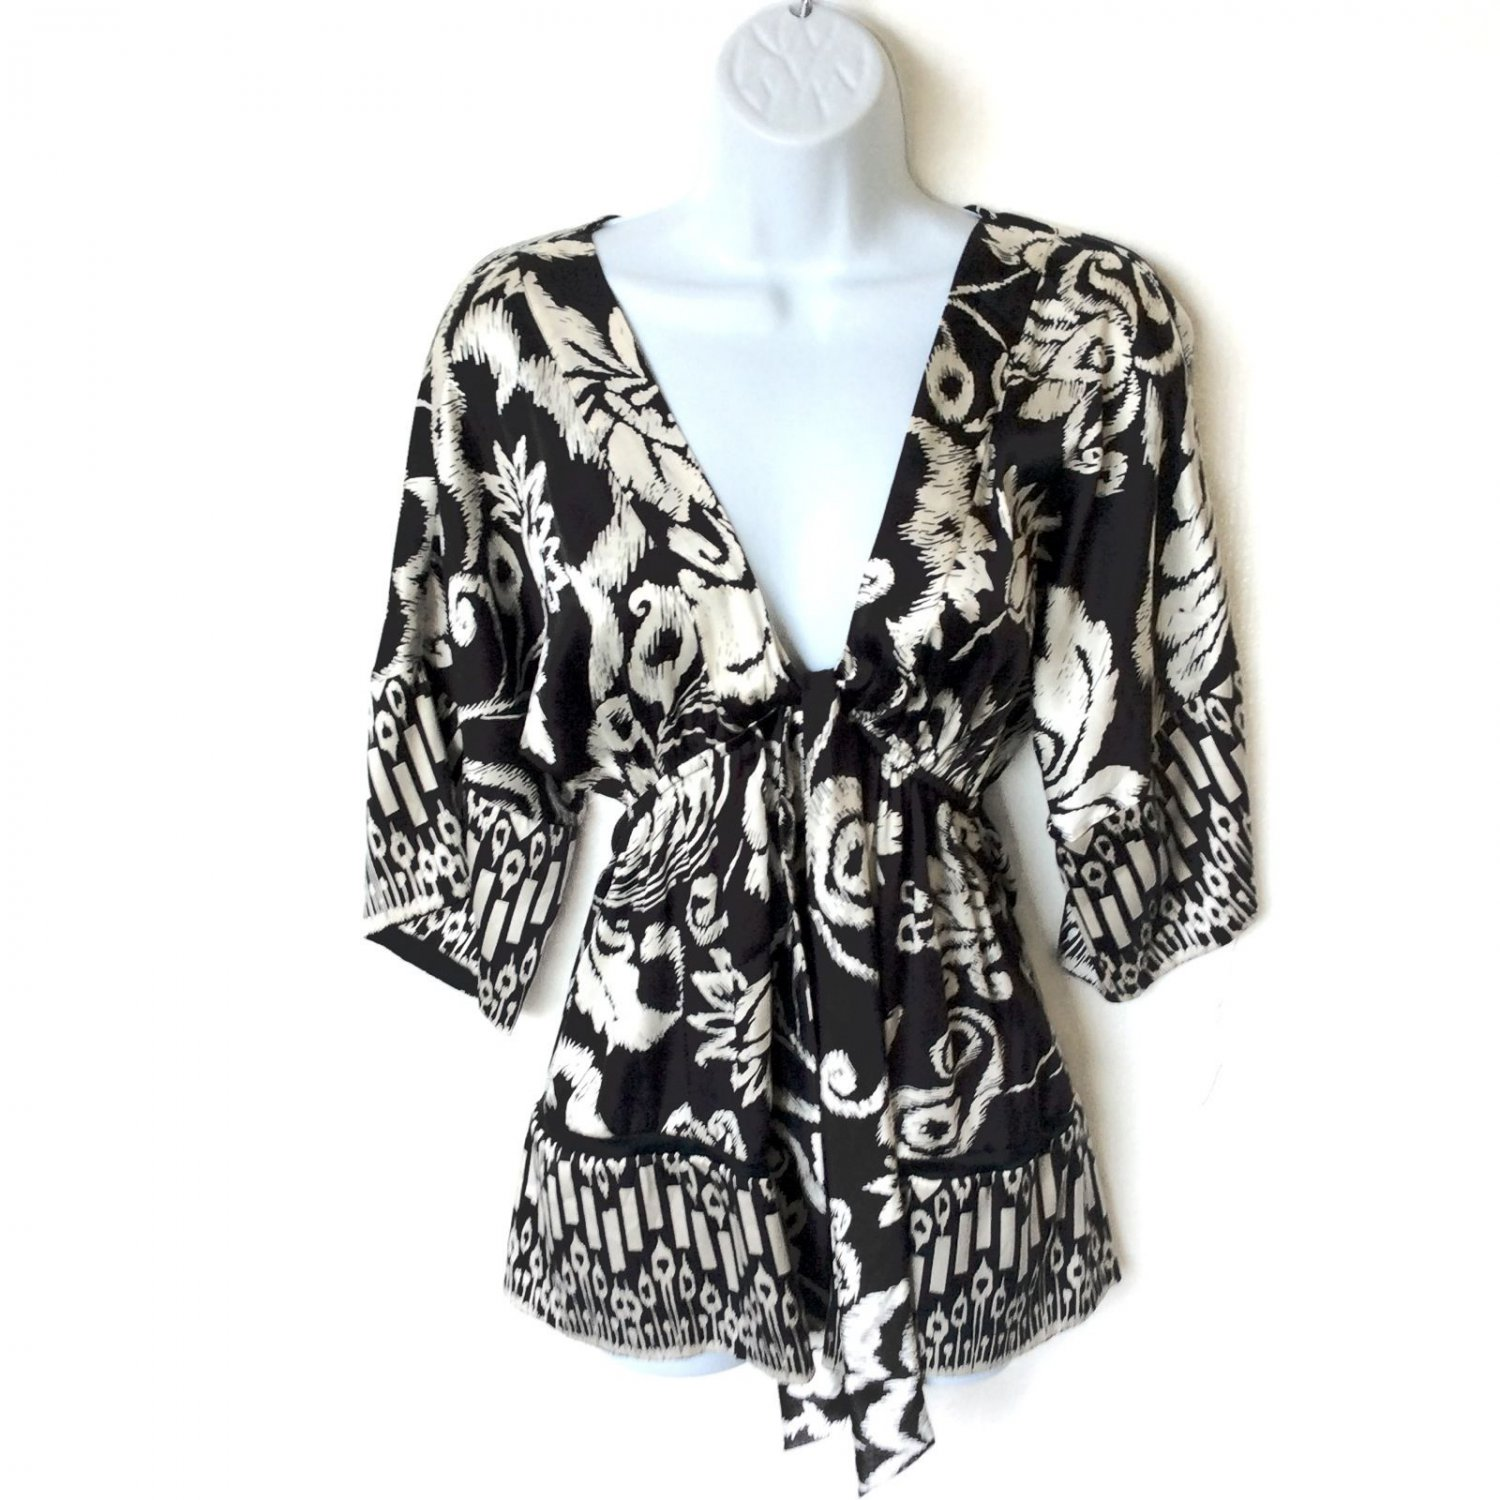 Joseph Black and Ivory Cream Silk Tie Bust Tunic Top Blouse Shirt Women's Size Small (S)